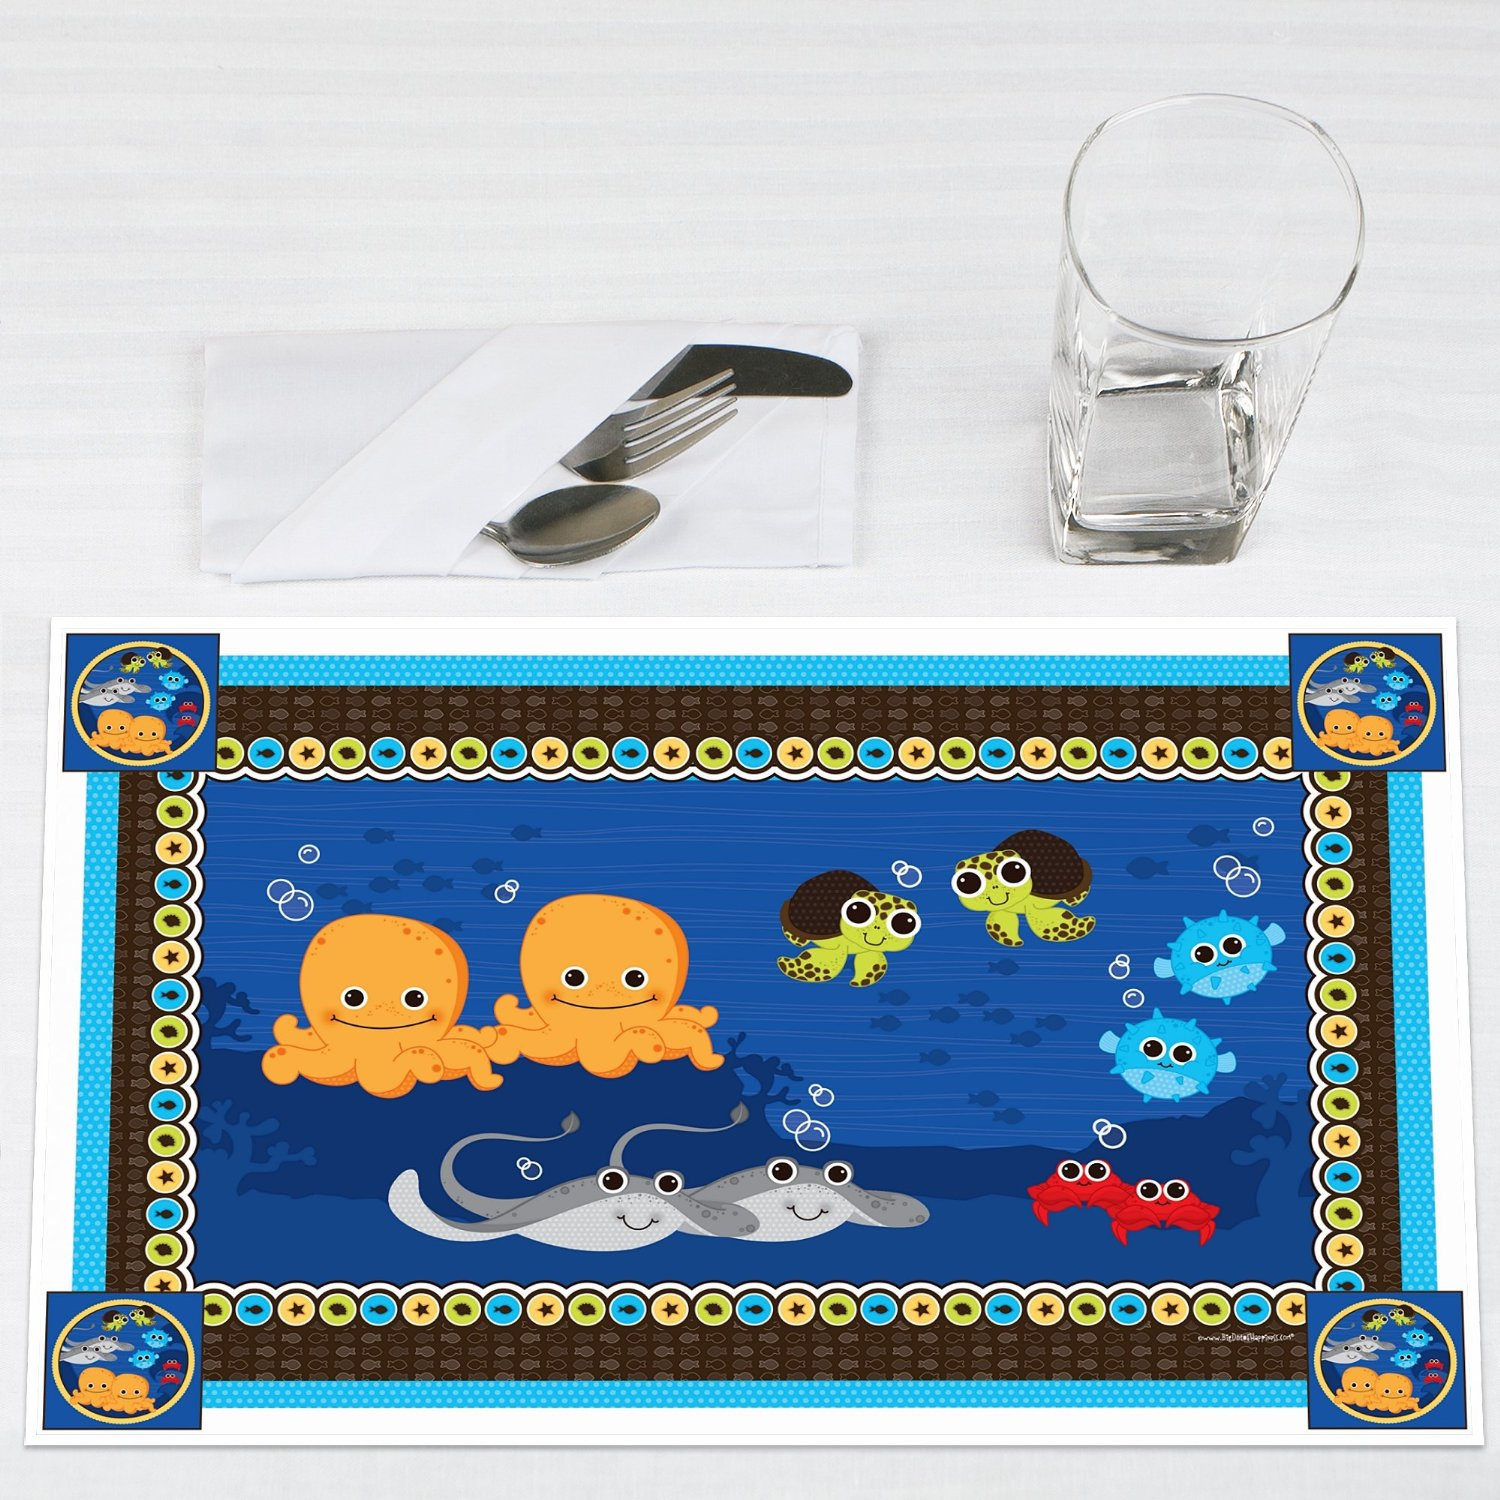 Twins Under The Sea Critters Party Placemats Set of 12 by Big Dot of Happiness, LLC